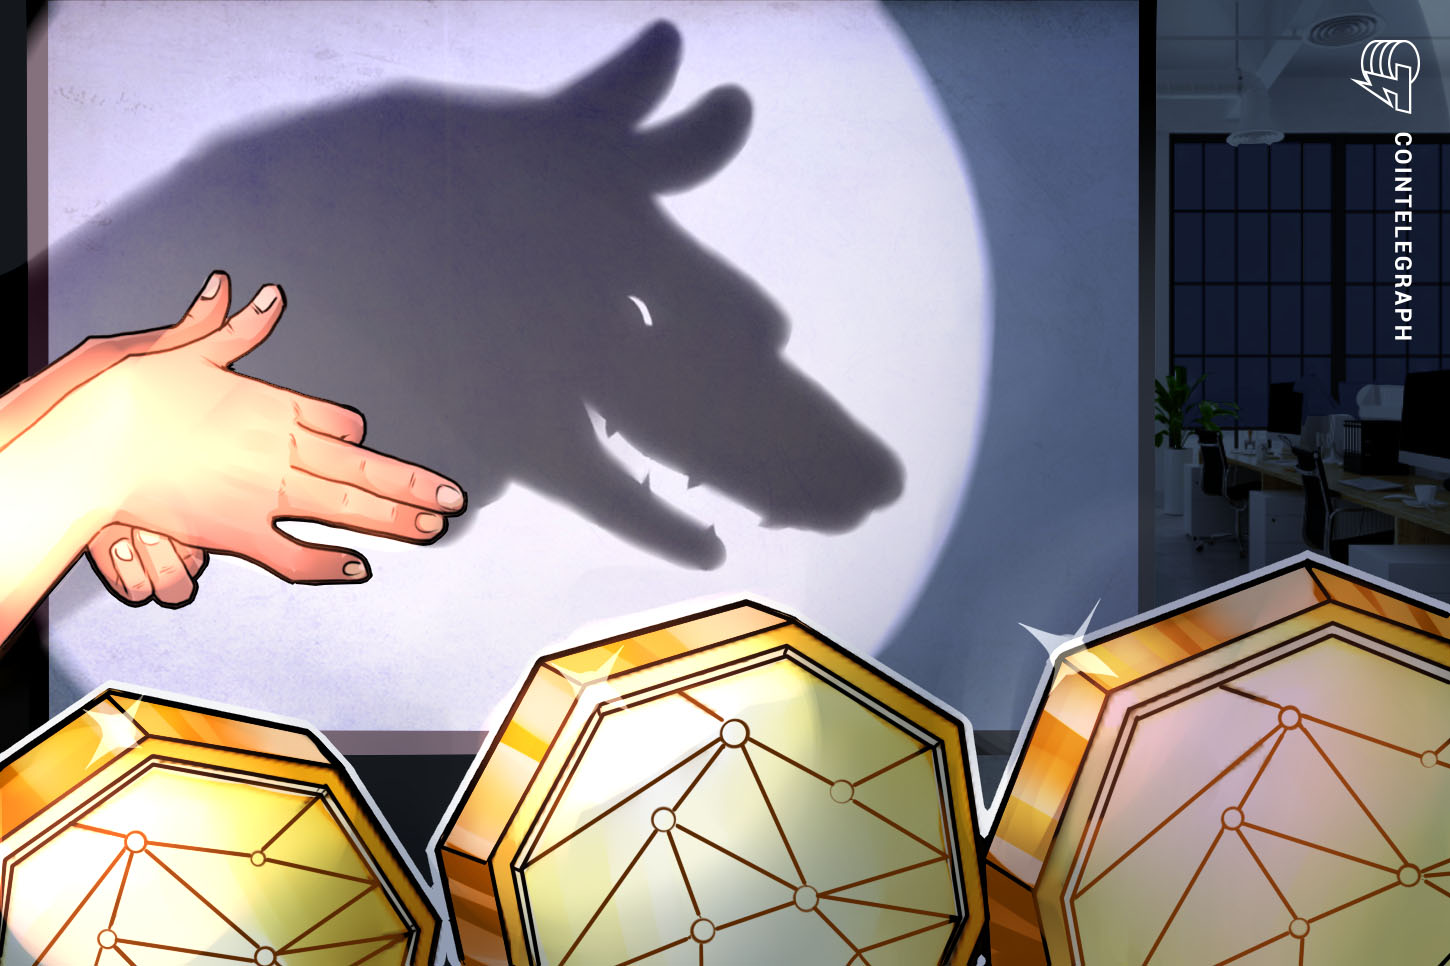 All bark and some bite. China's Bitcoin ban puts traders in the 'fear' zone